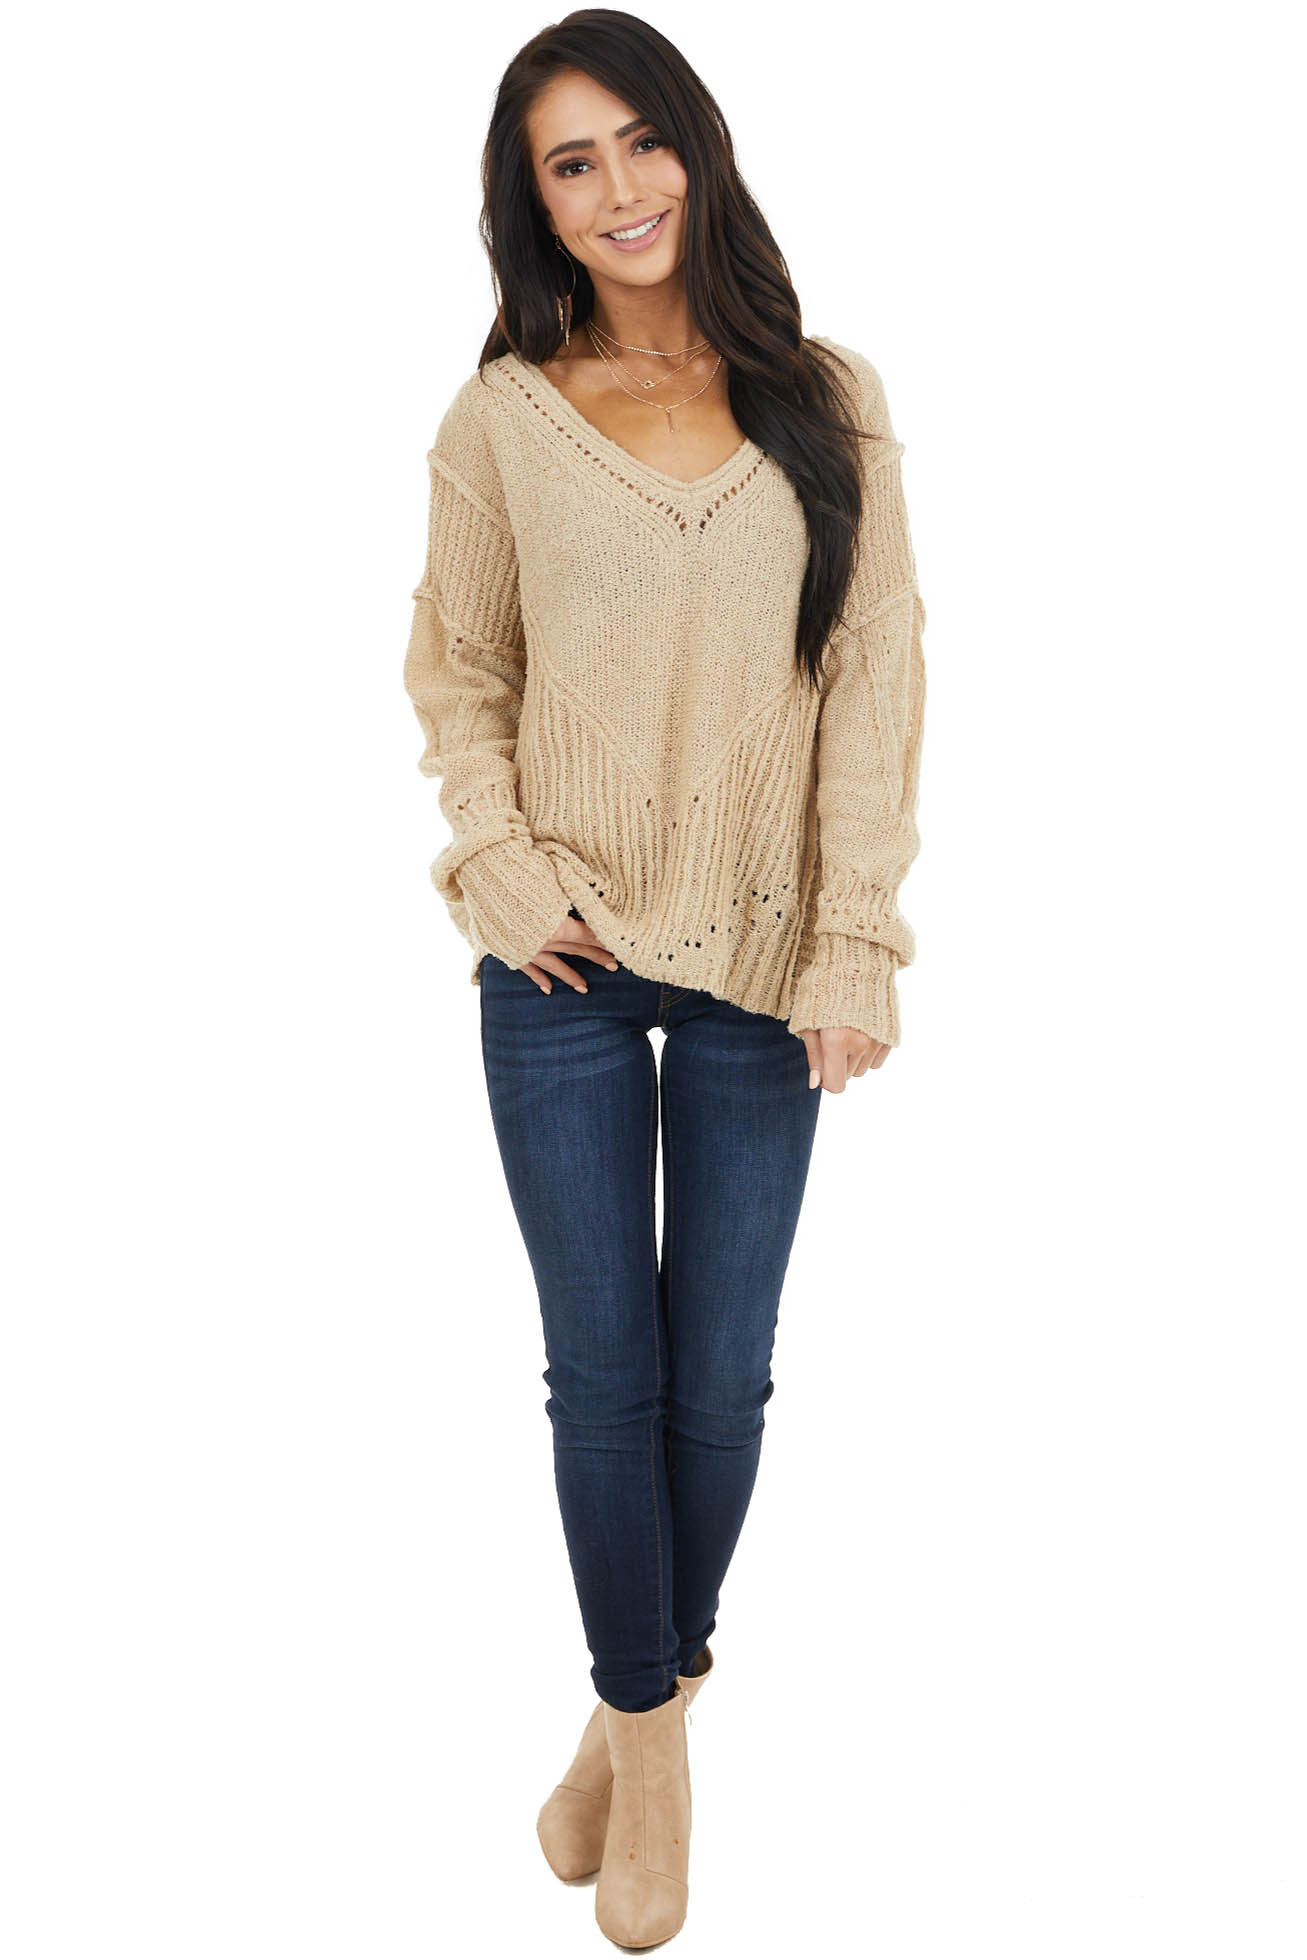 Beige Textured Knit Sweater with Cutout Details